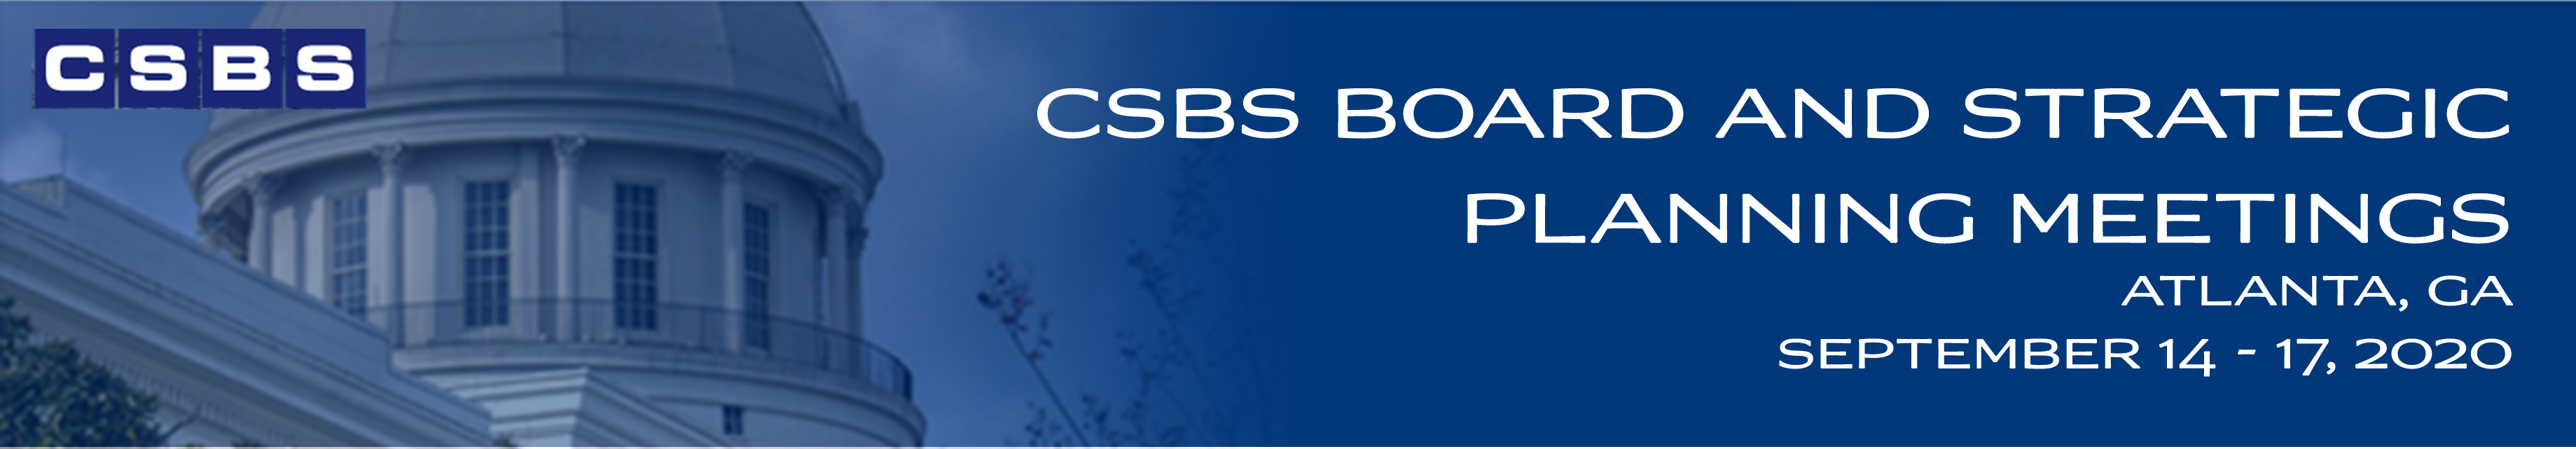 2020 CSBS Board and Strategic Planning Meetings